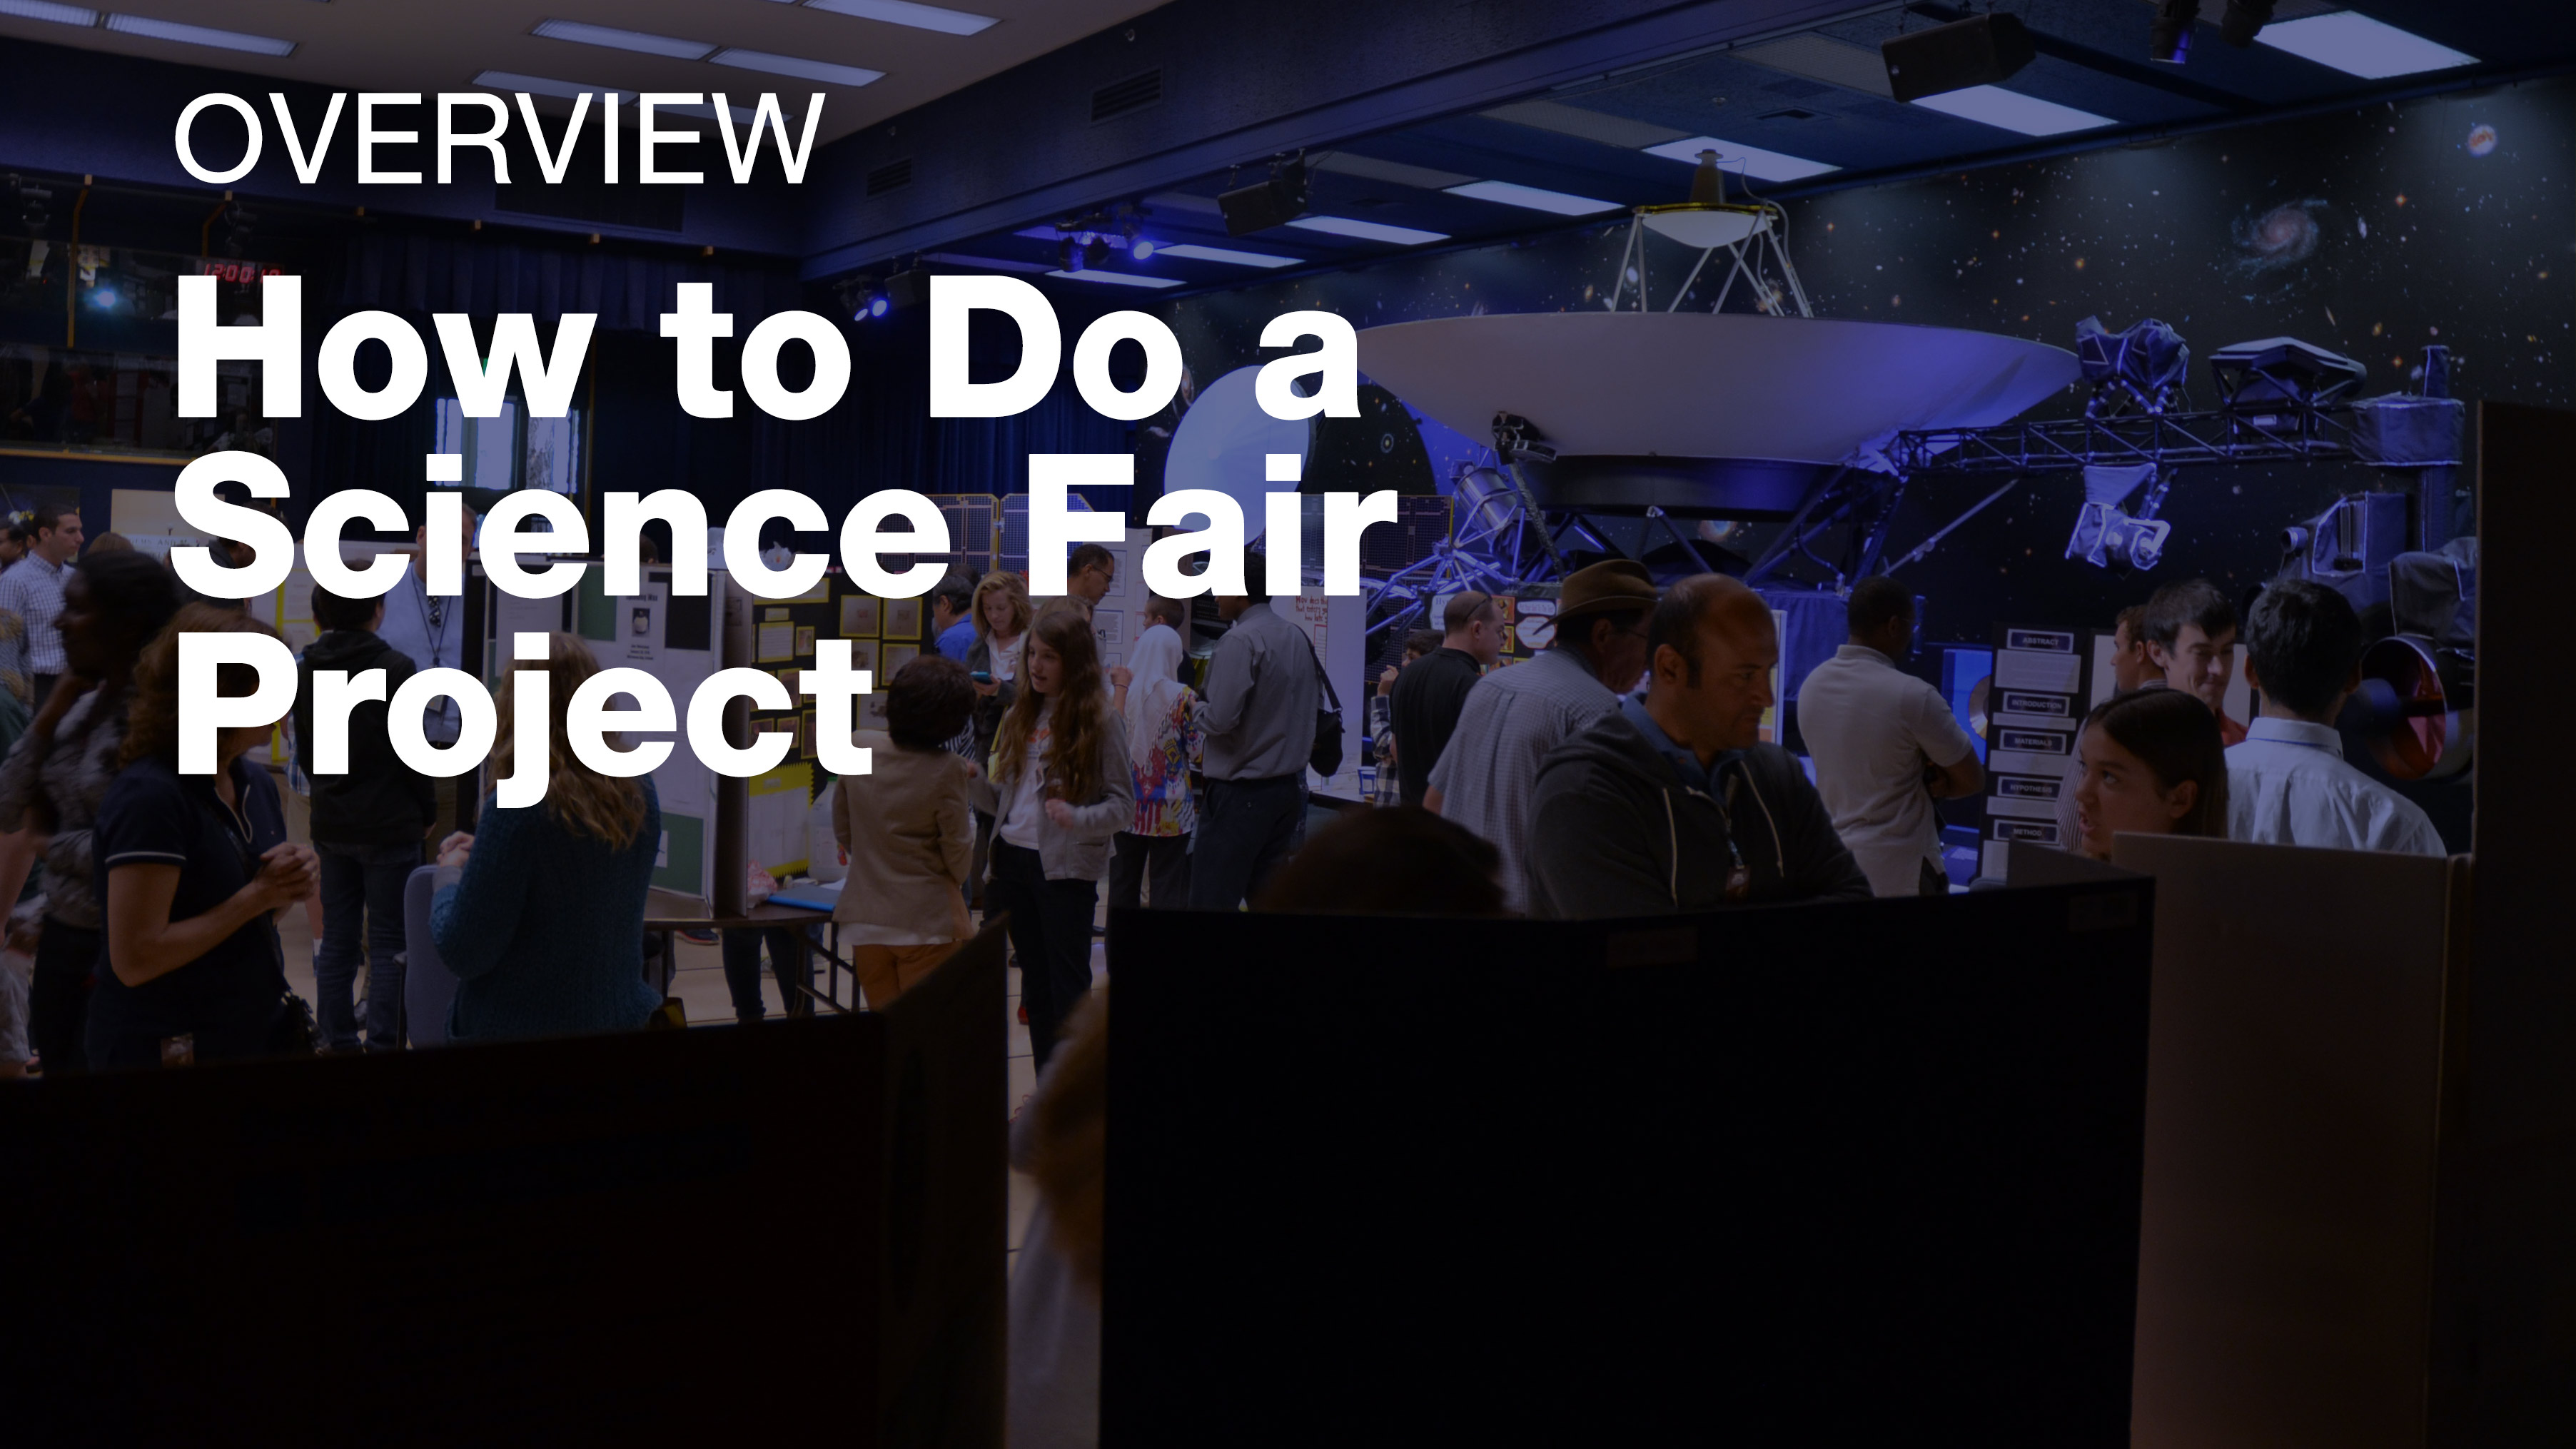 How to Do a Science Fair Project video tutorial - Overview